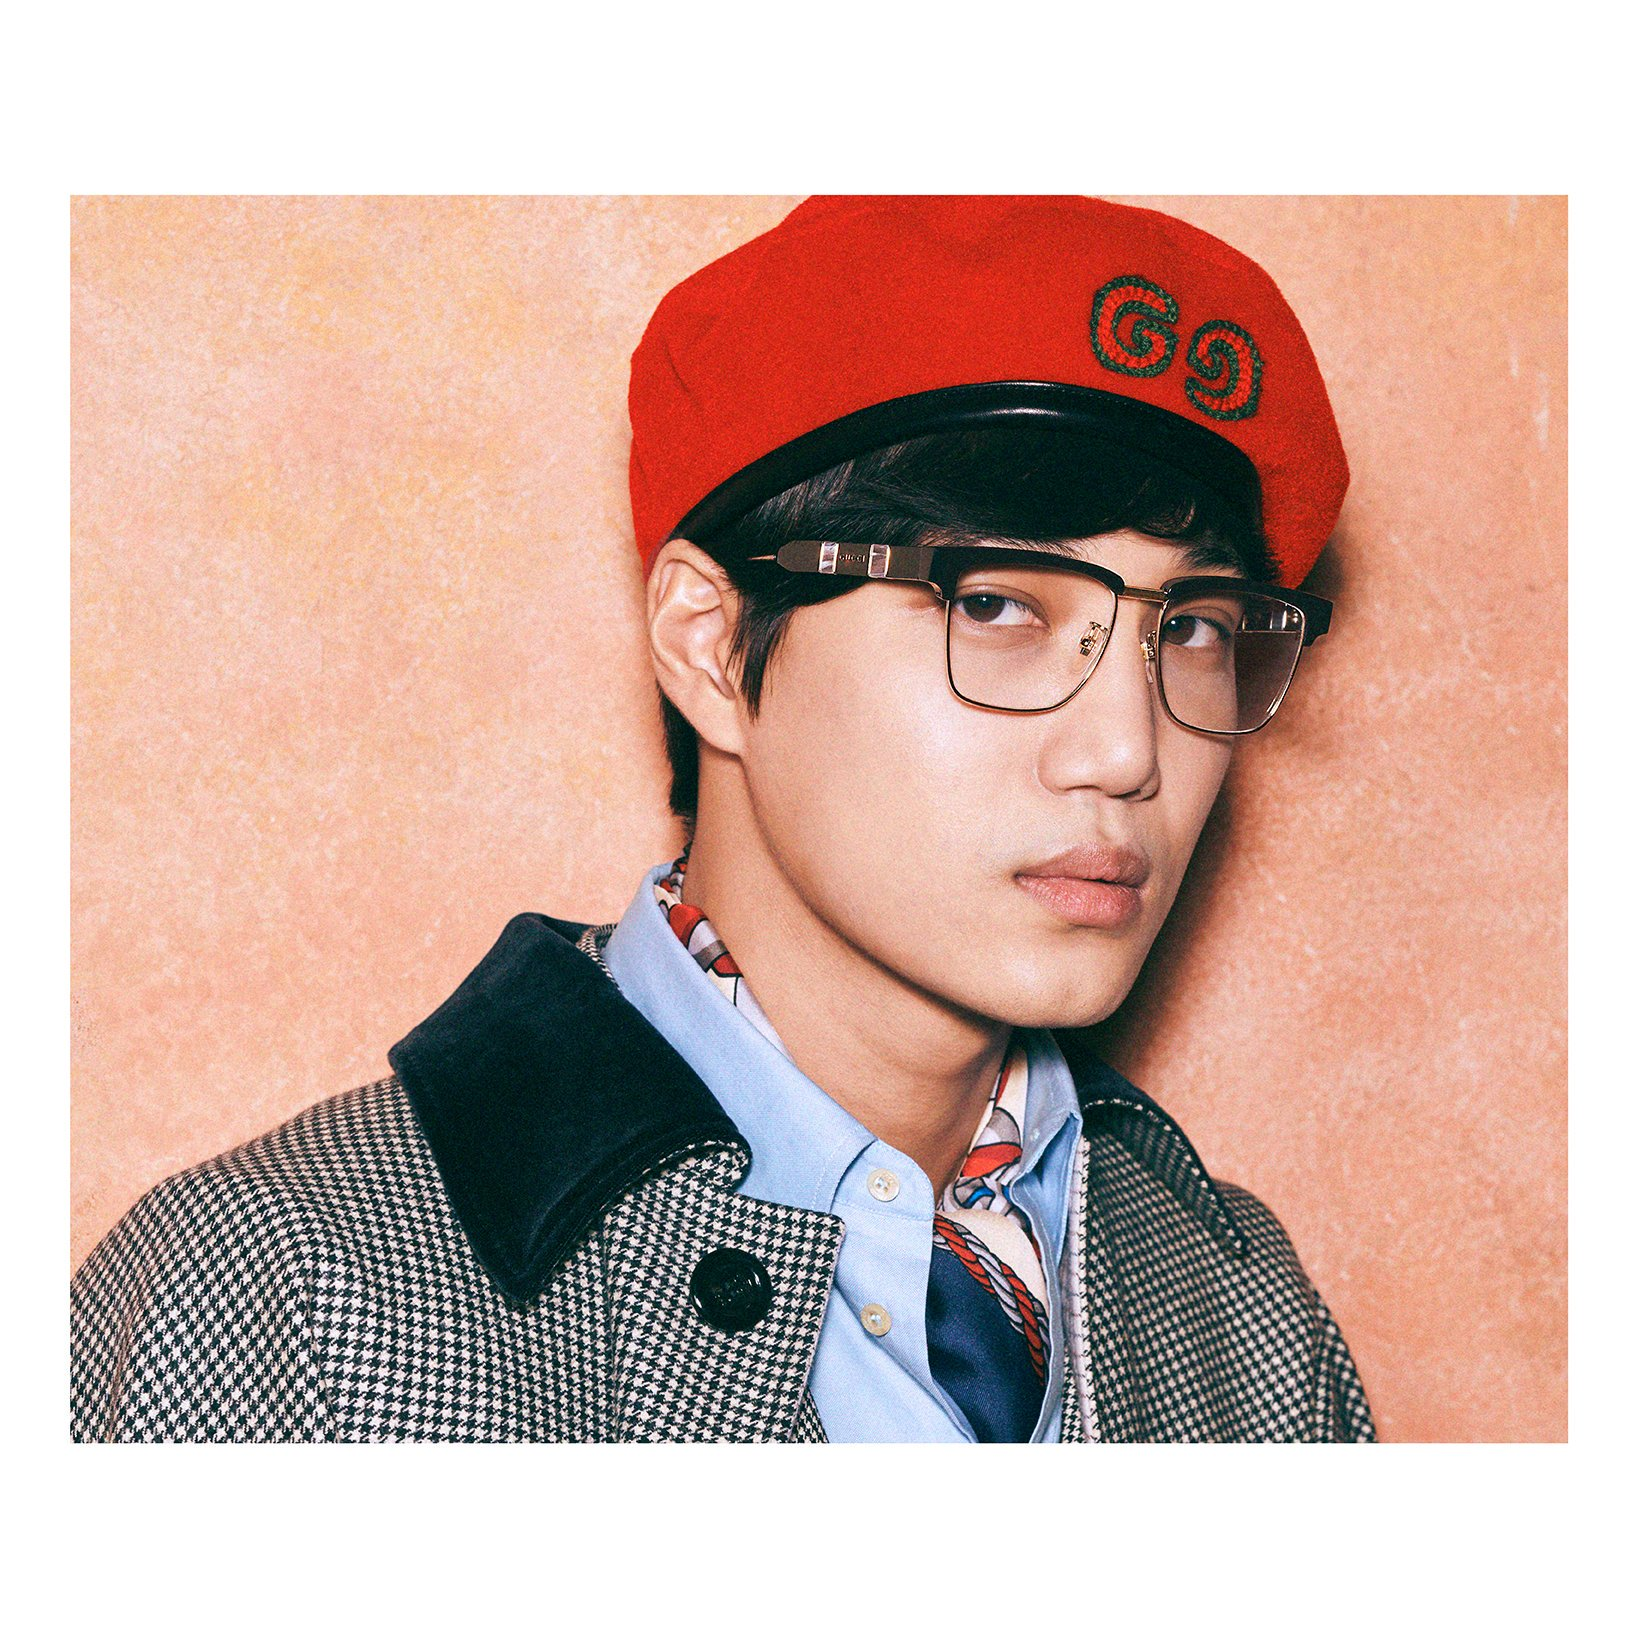 #Kai from @weareoneEXO stars in the new #GucciEyewar campaign for Fall Winter 2019. Wearing key shades designed by #AlessandroMichele, #Kai is captured by cult filmmaker and photographer #HarmonyKorine. #GucciFW19 https://t.co/1k7BPuAjXy